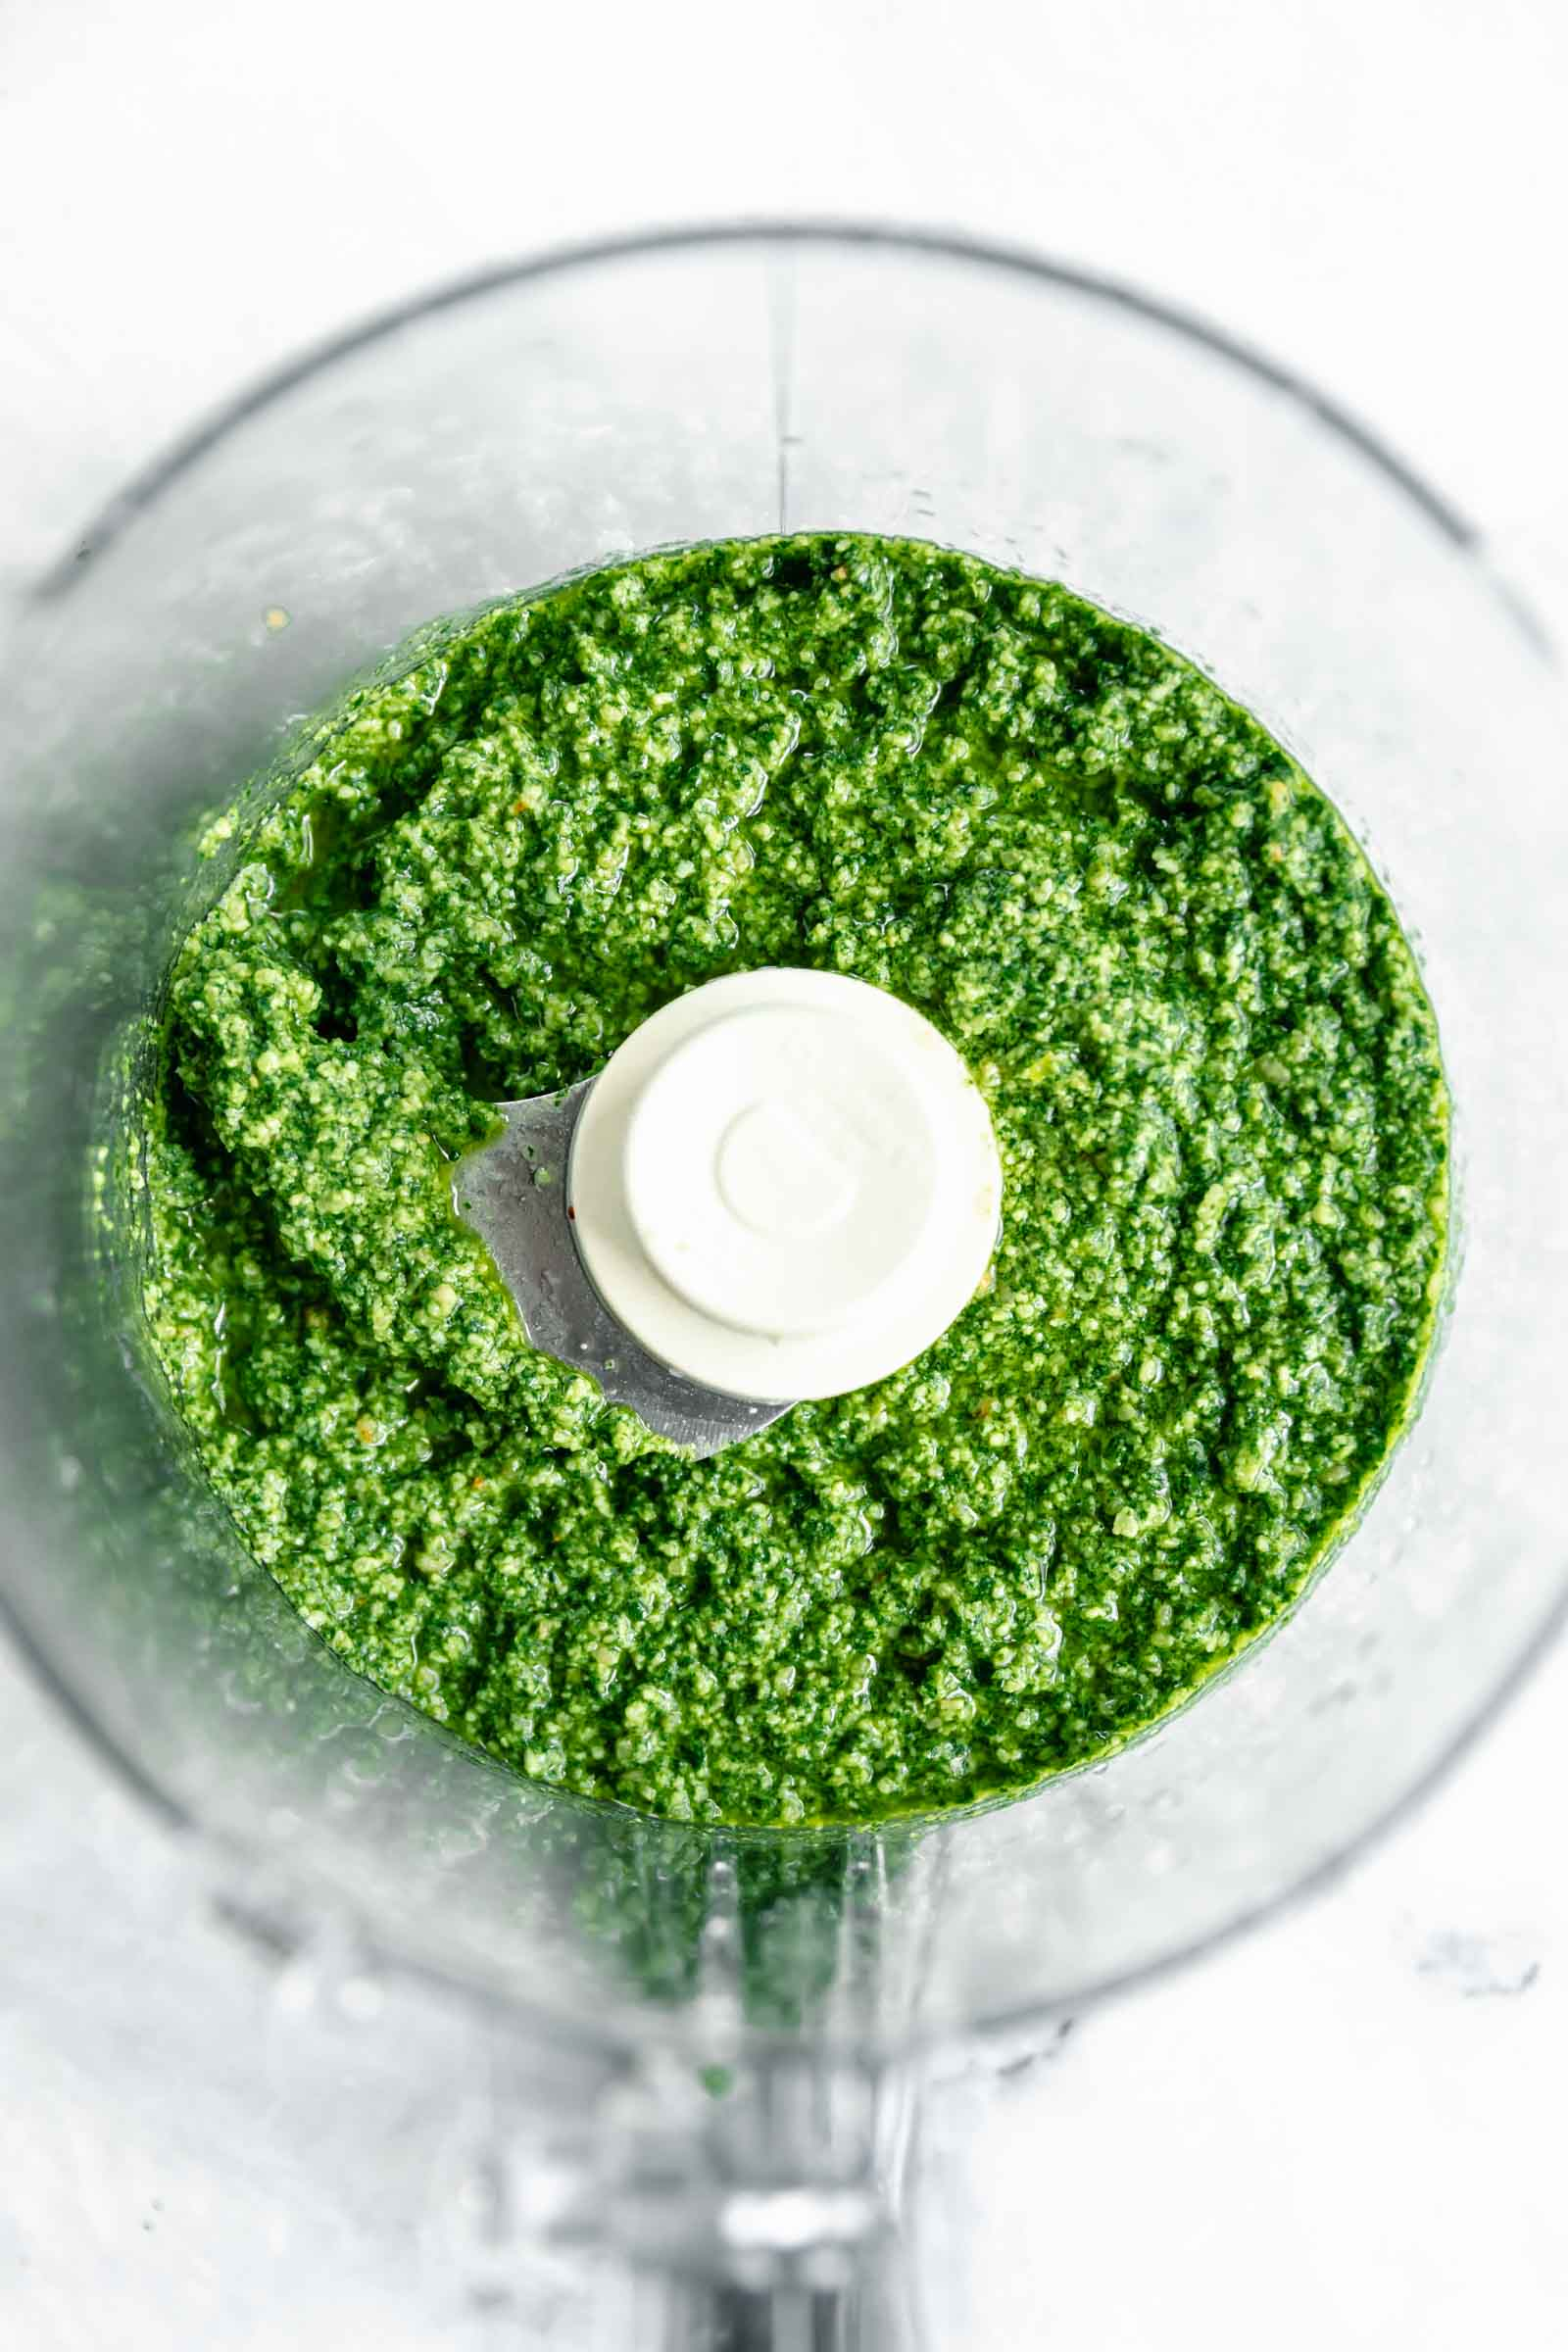 easy homemade pesto in a food processor